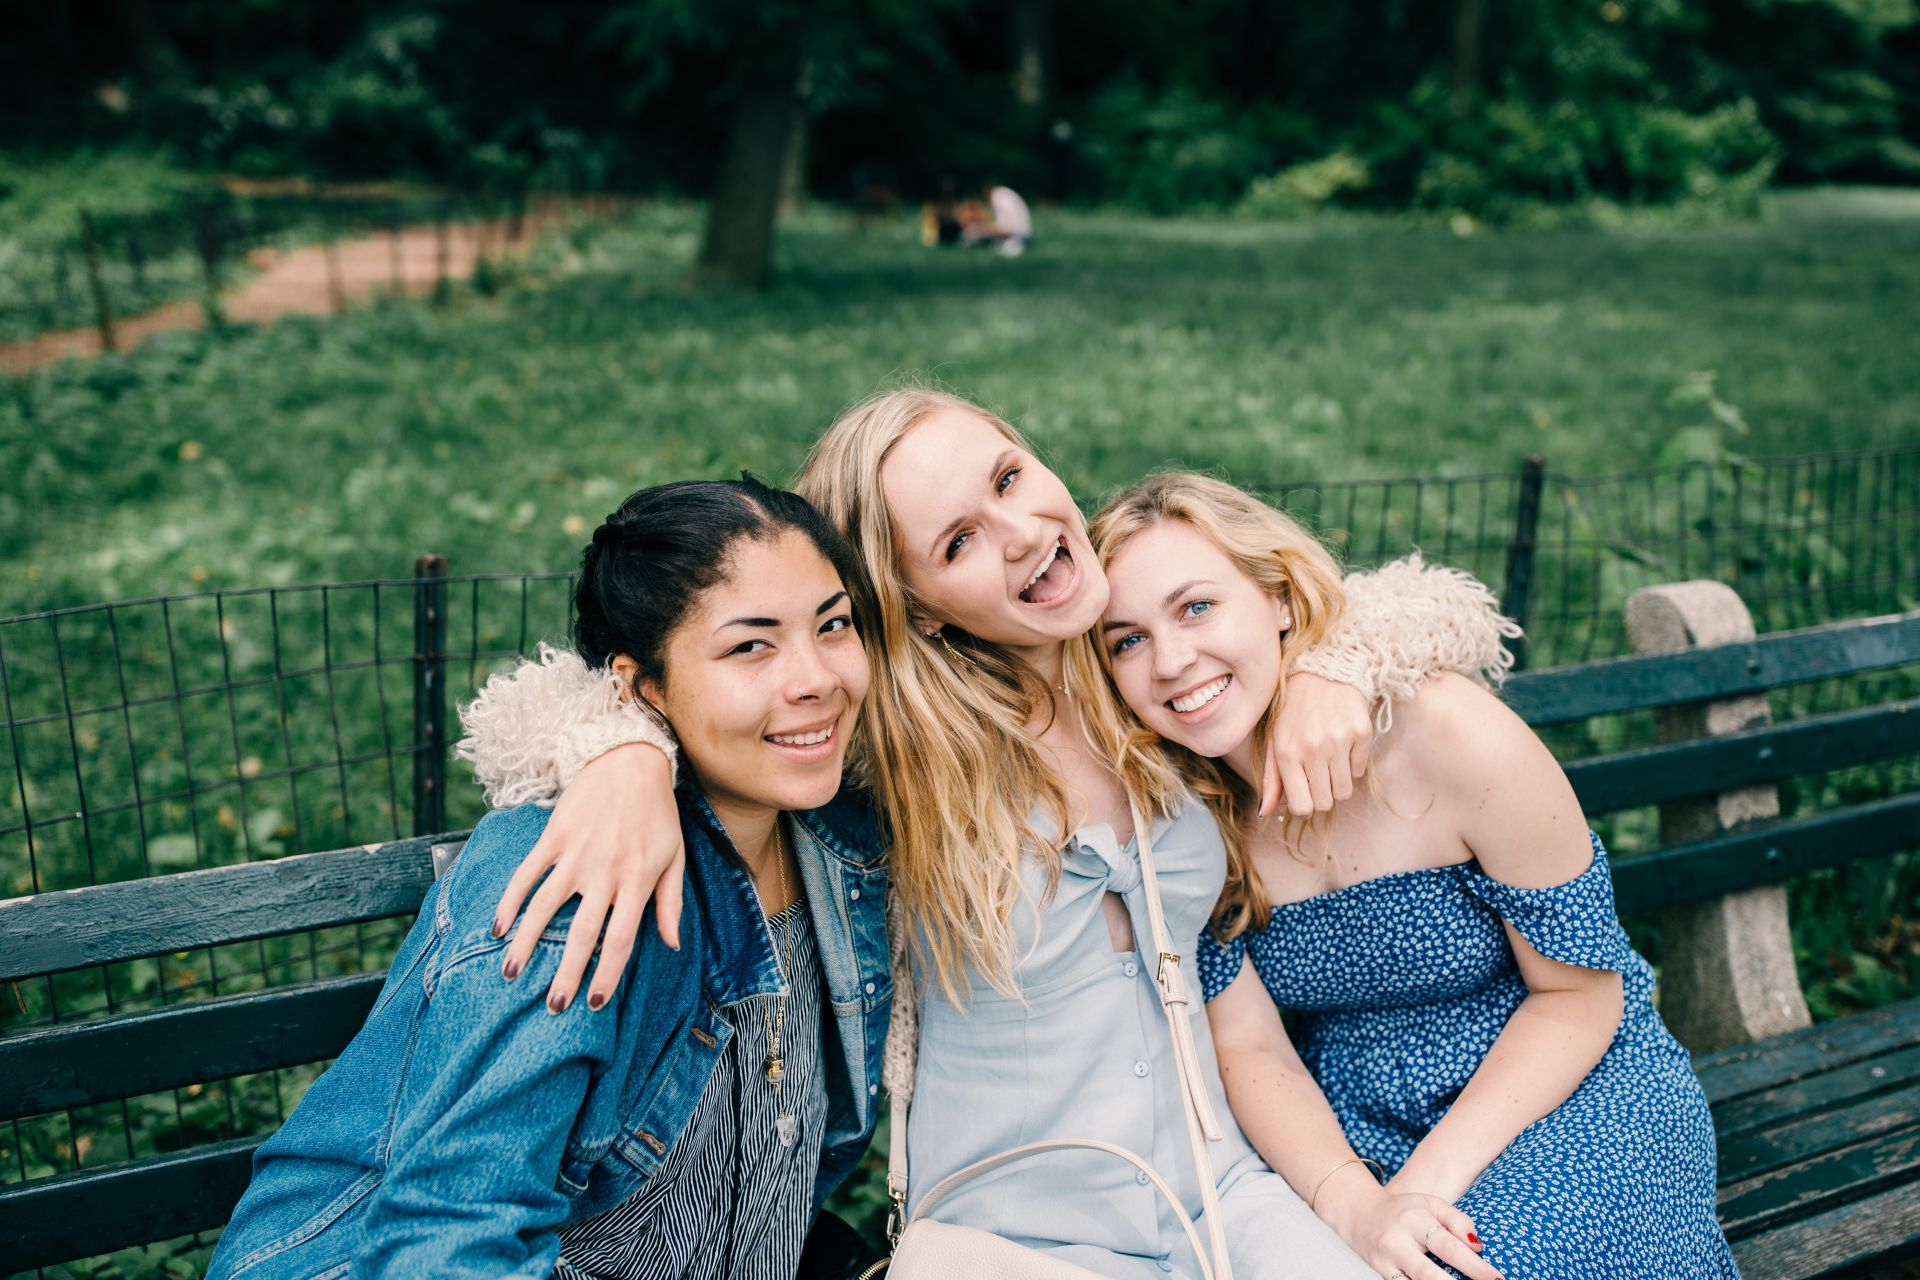 friends in central park new york city